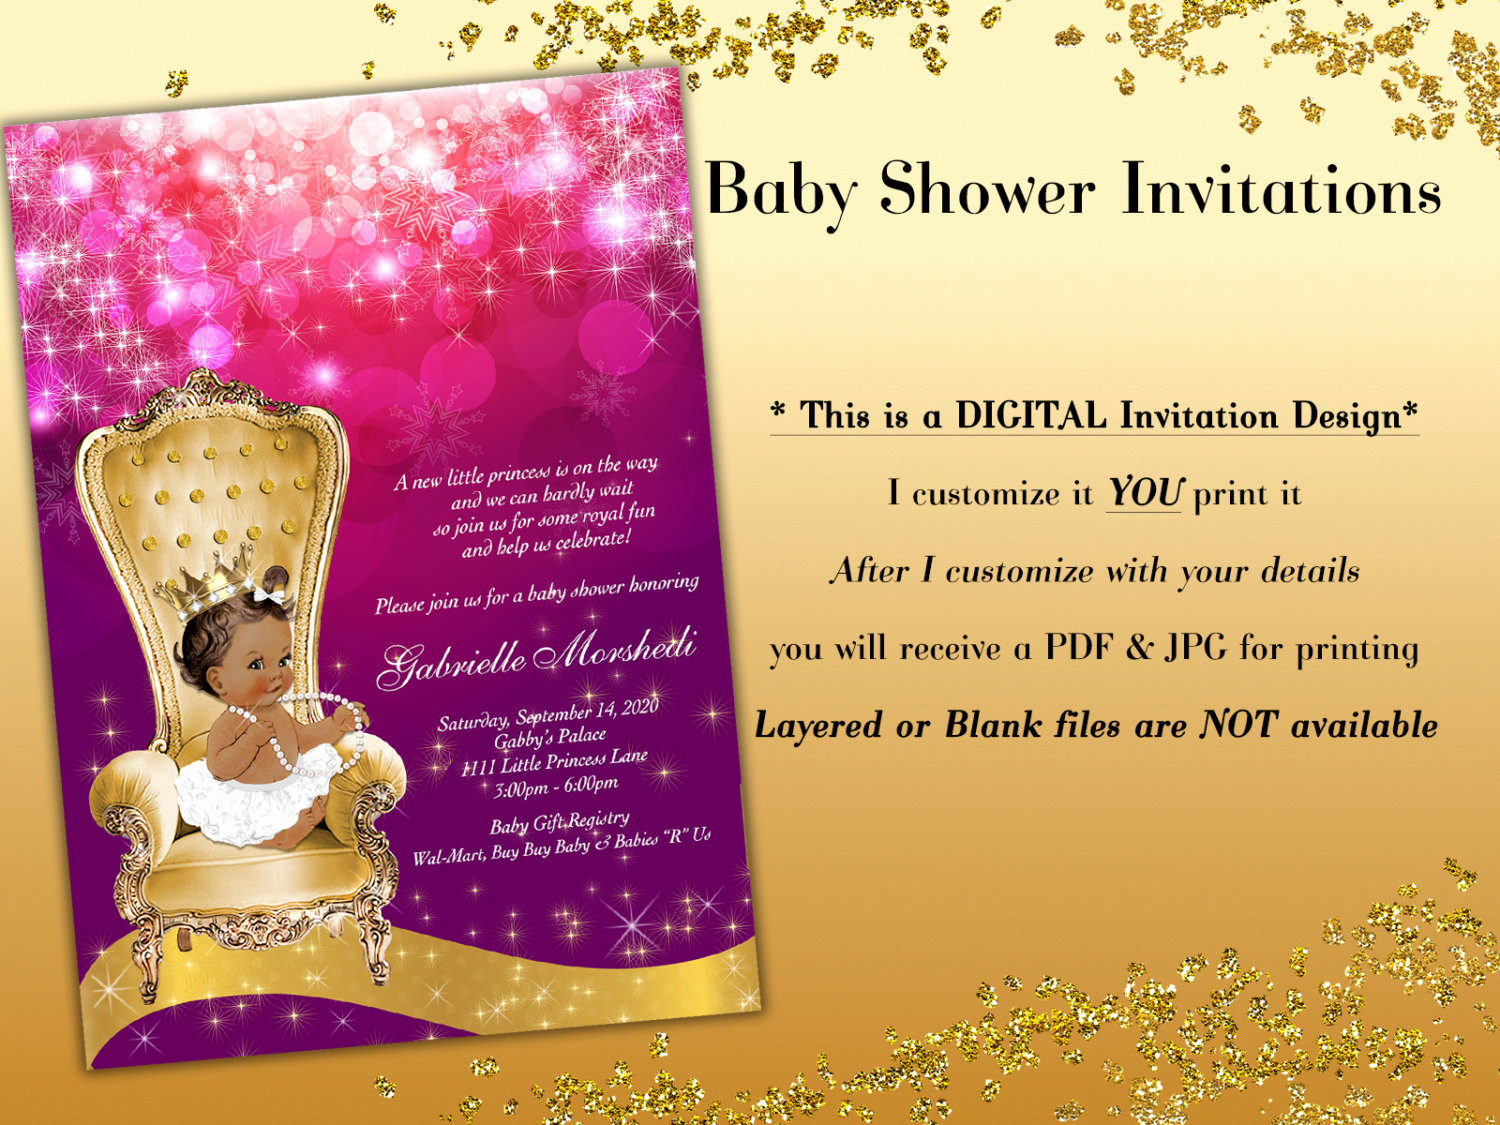 Royal Baby Shower Invitations Unique Baby Shower Invitation Royal Baby Shower Invitations